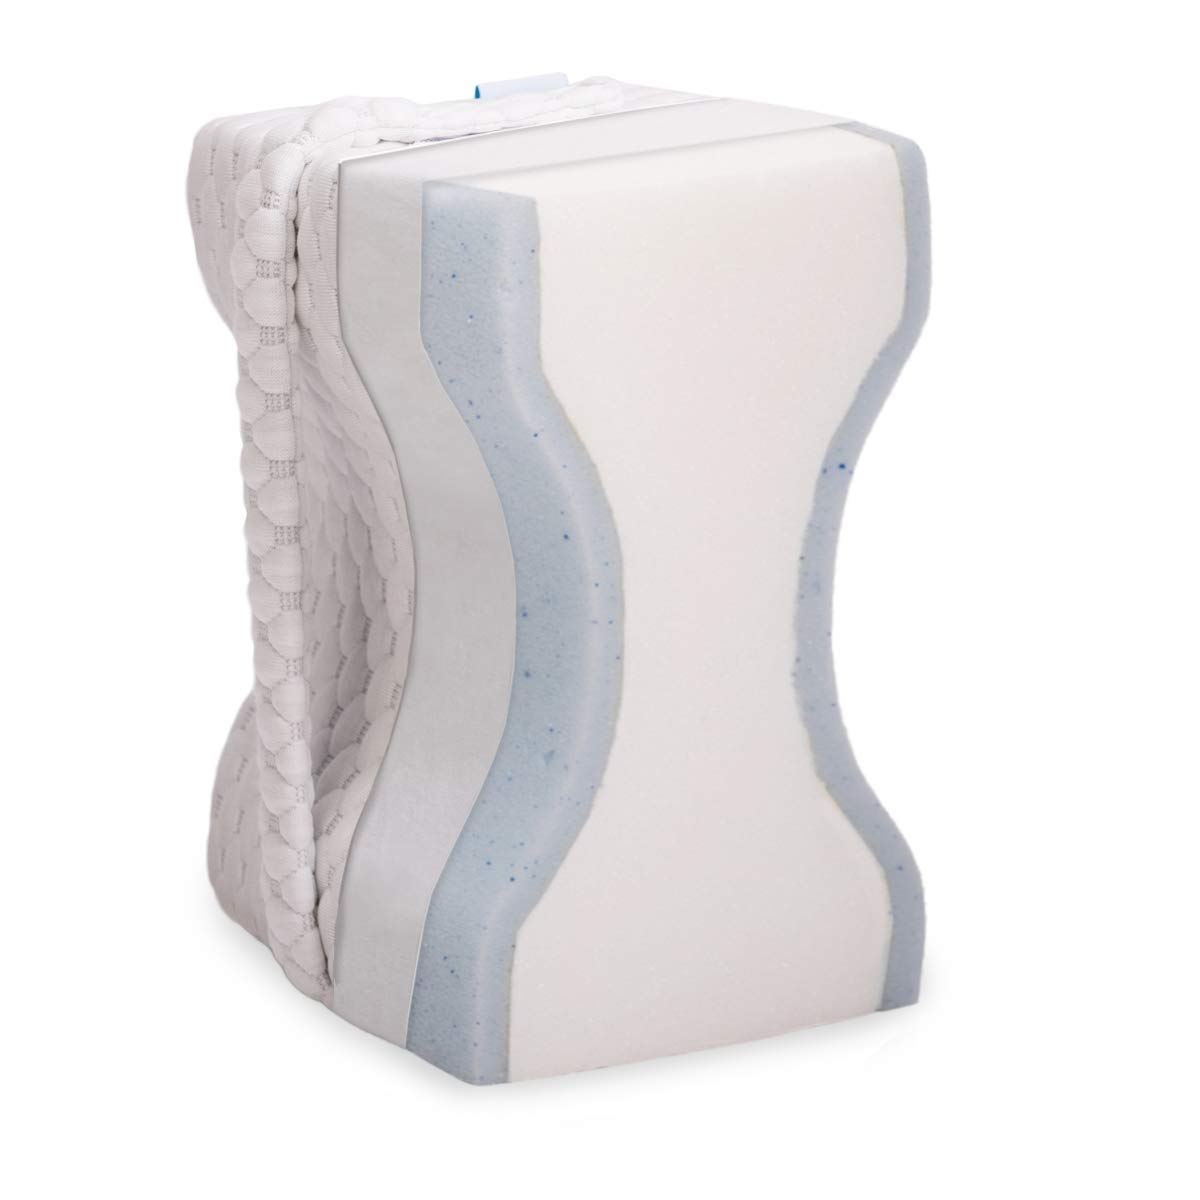 wavve Leg Pillow for Side Sleepers, Pregnancy Support, Hip, Sciatic, Lower Back Pain Relief Gel-Infused Memory Foam Knee Pillow Orthopedic Contour Under/Between Knee Pillow for Sleeping with Strap